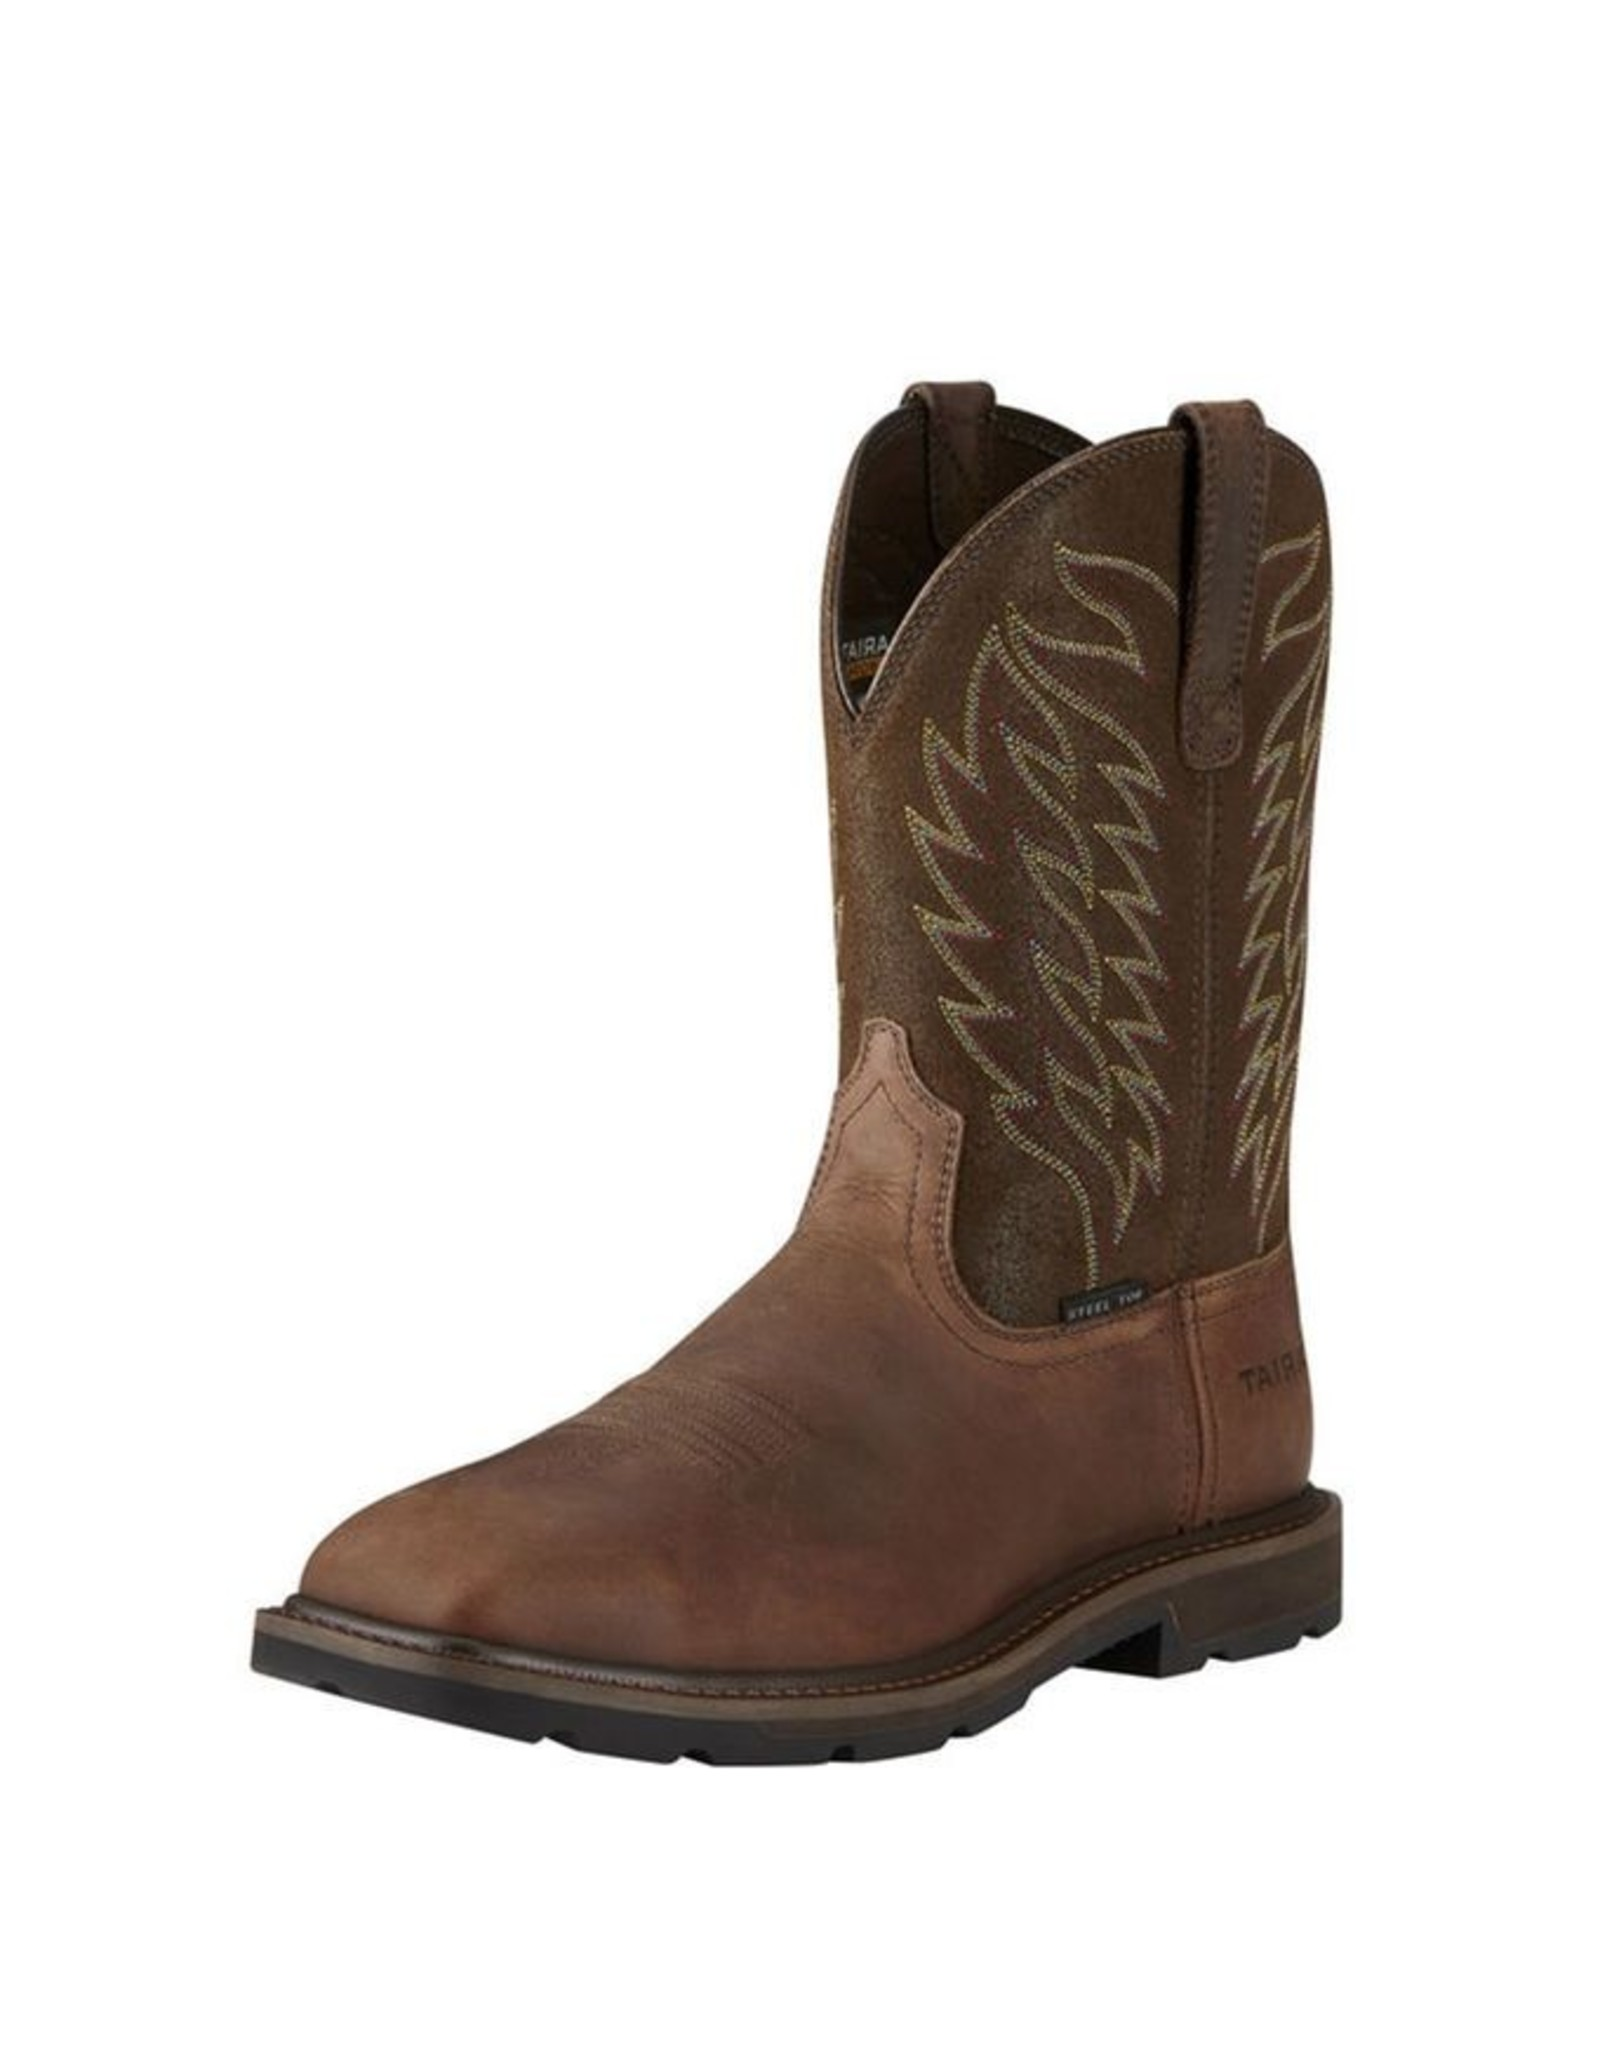 Boots-Men Ariat 10021108 Groundbreaker Wide Square Steel Toe